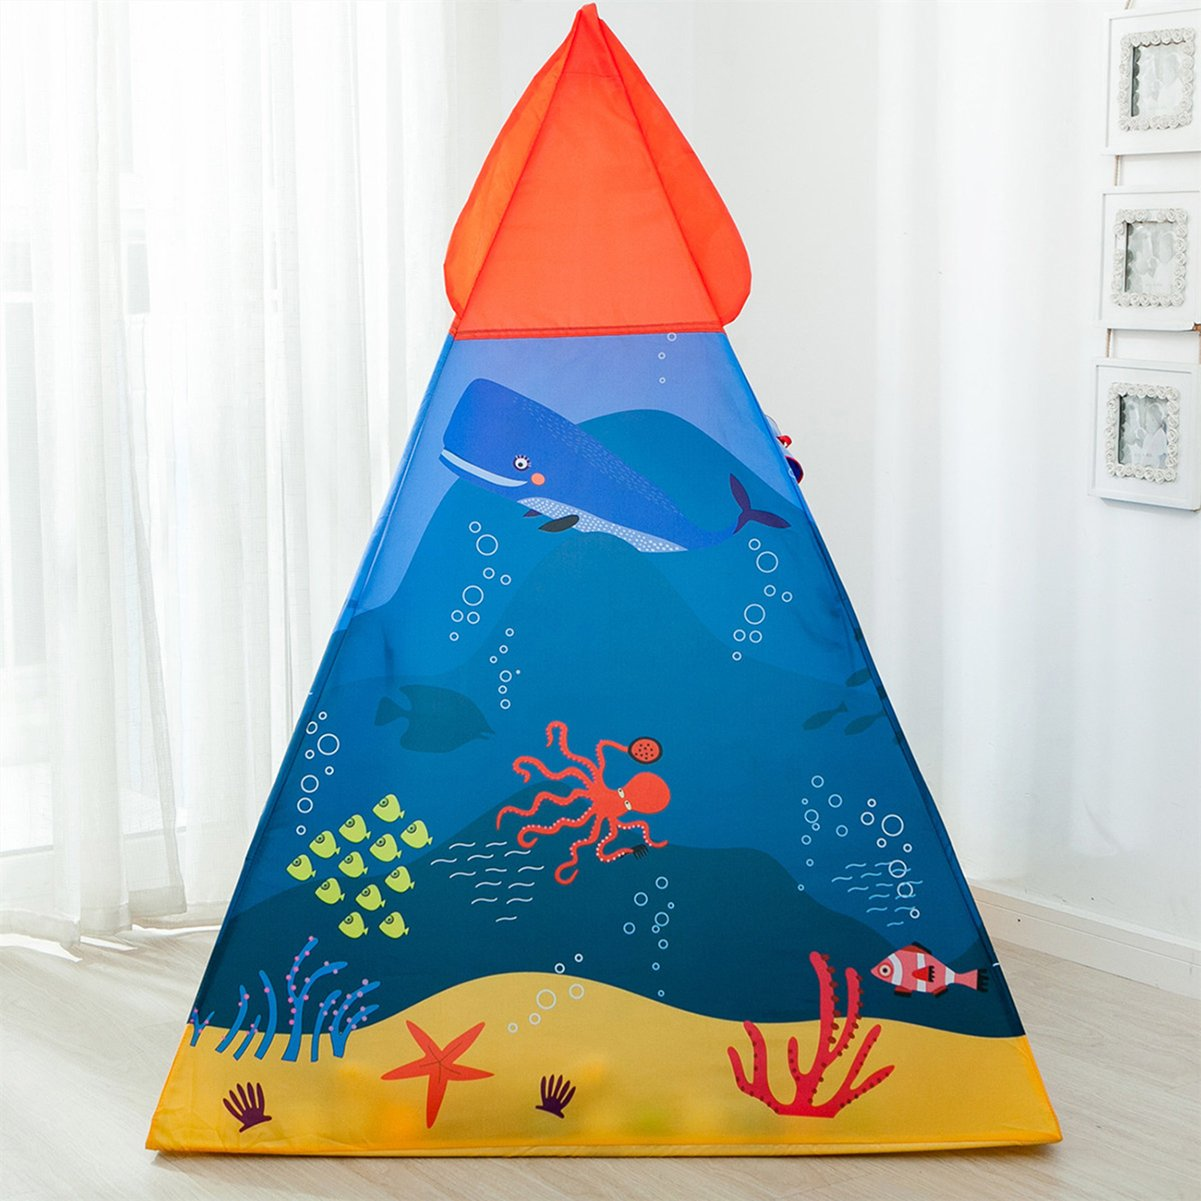 HAOCOO Kids Tent Pop Up Baby Toys Play Tent House Princess Prince House Castle Outdoor and Indoor as a for 1-8 Years Old Kids Boy Girls Toddler Infant Princess Castle